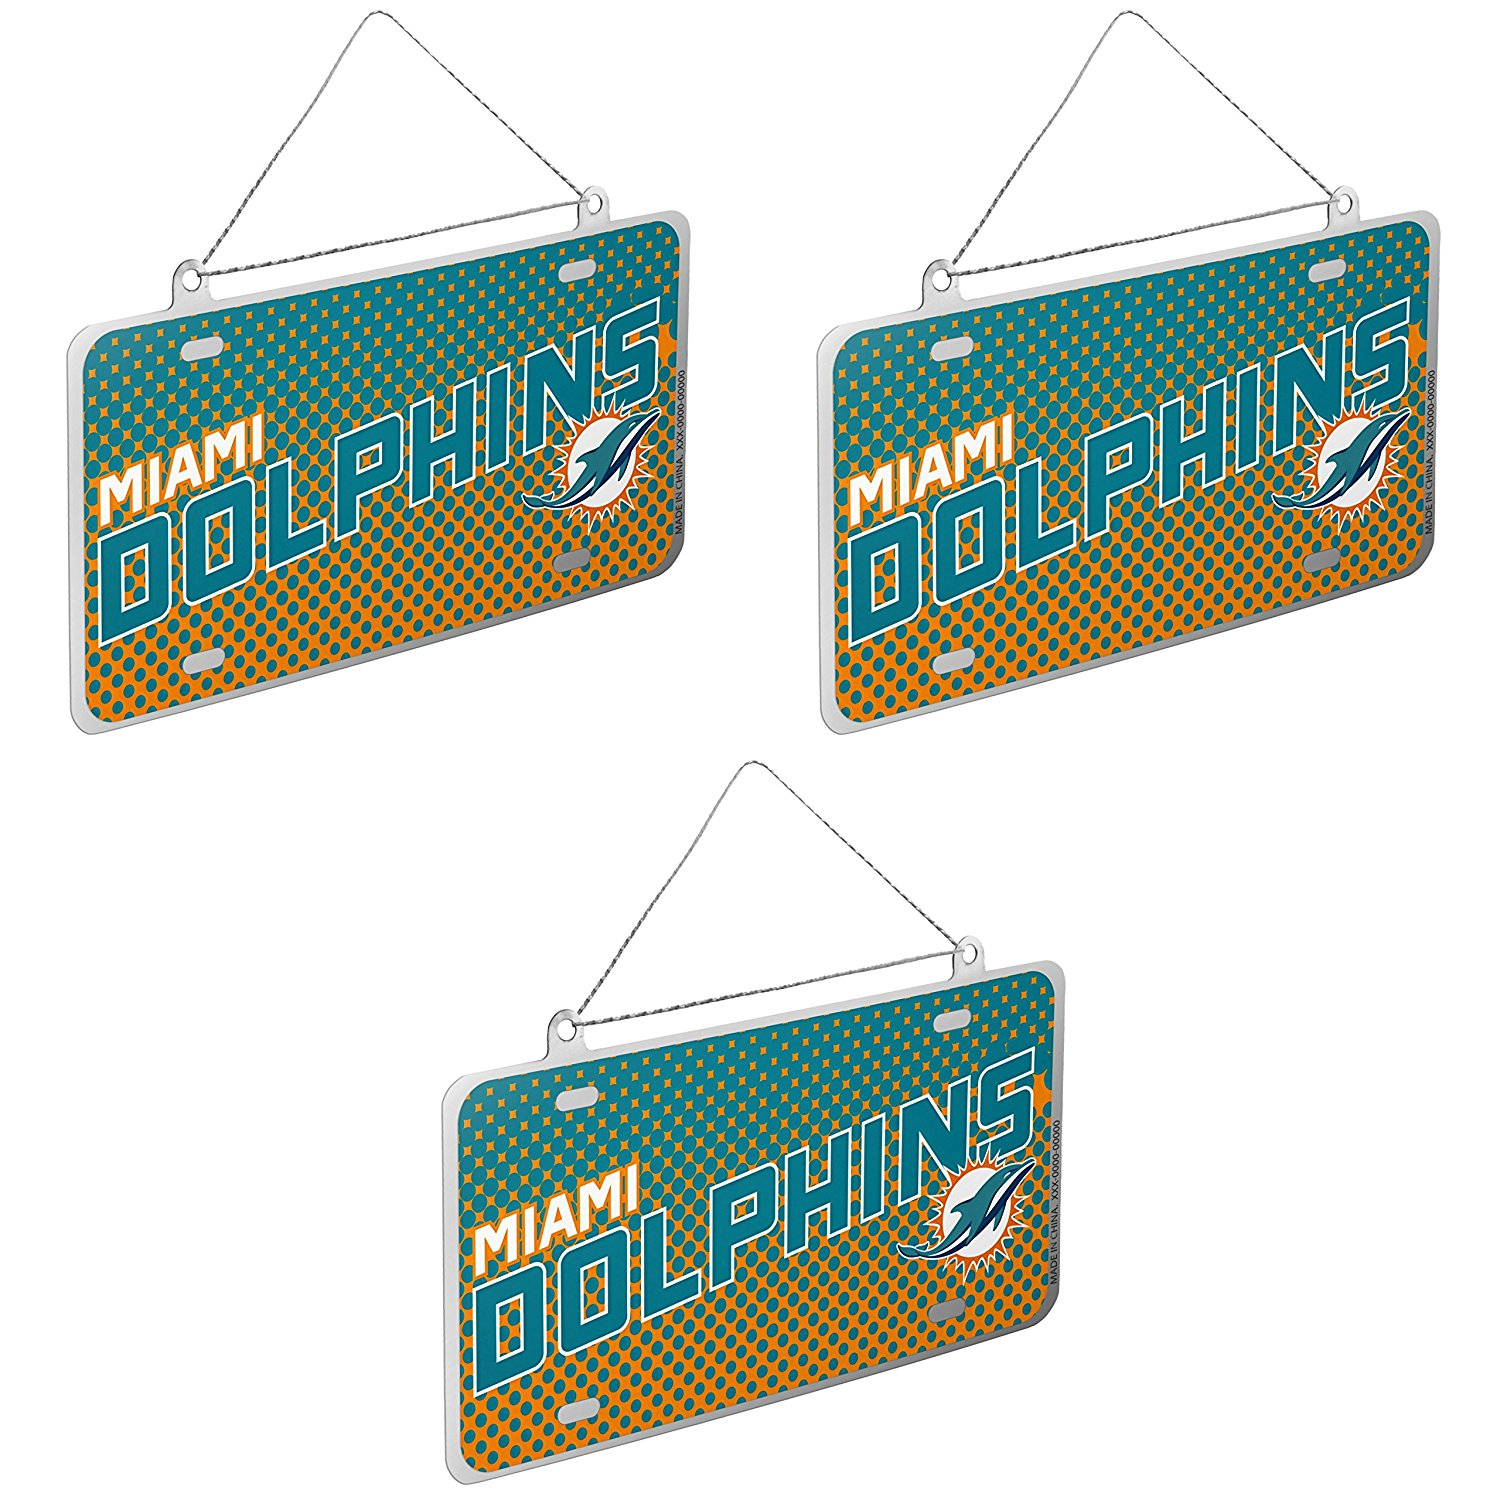 NFL Miami Dolphins Metal License Plate Christmas Ornament Bundle 3 Pack By Forever Collectibles